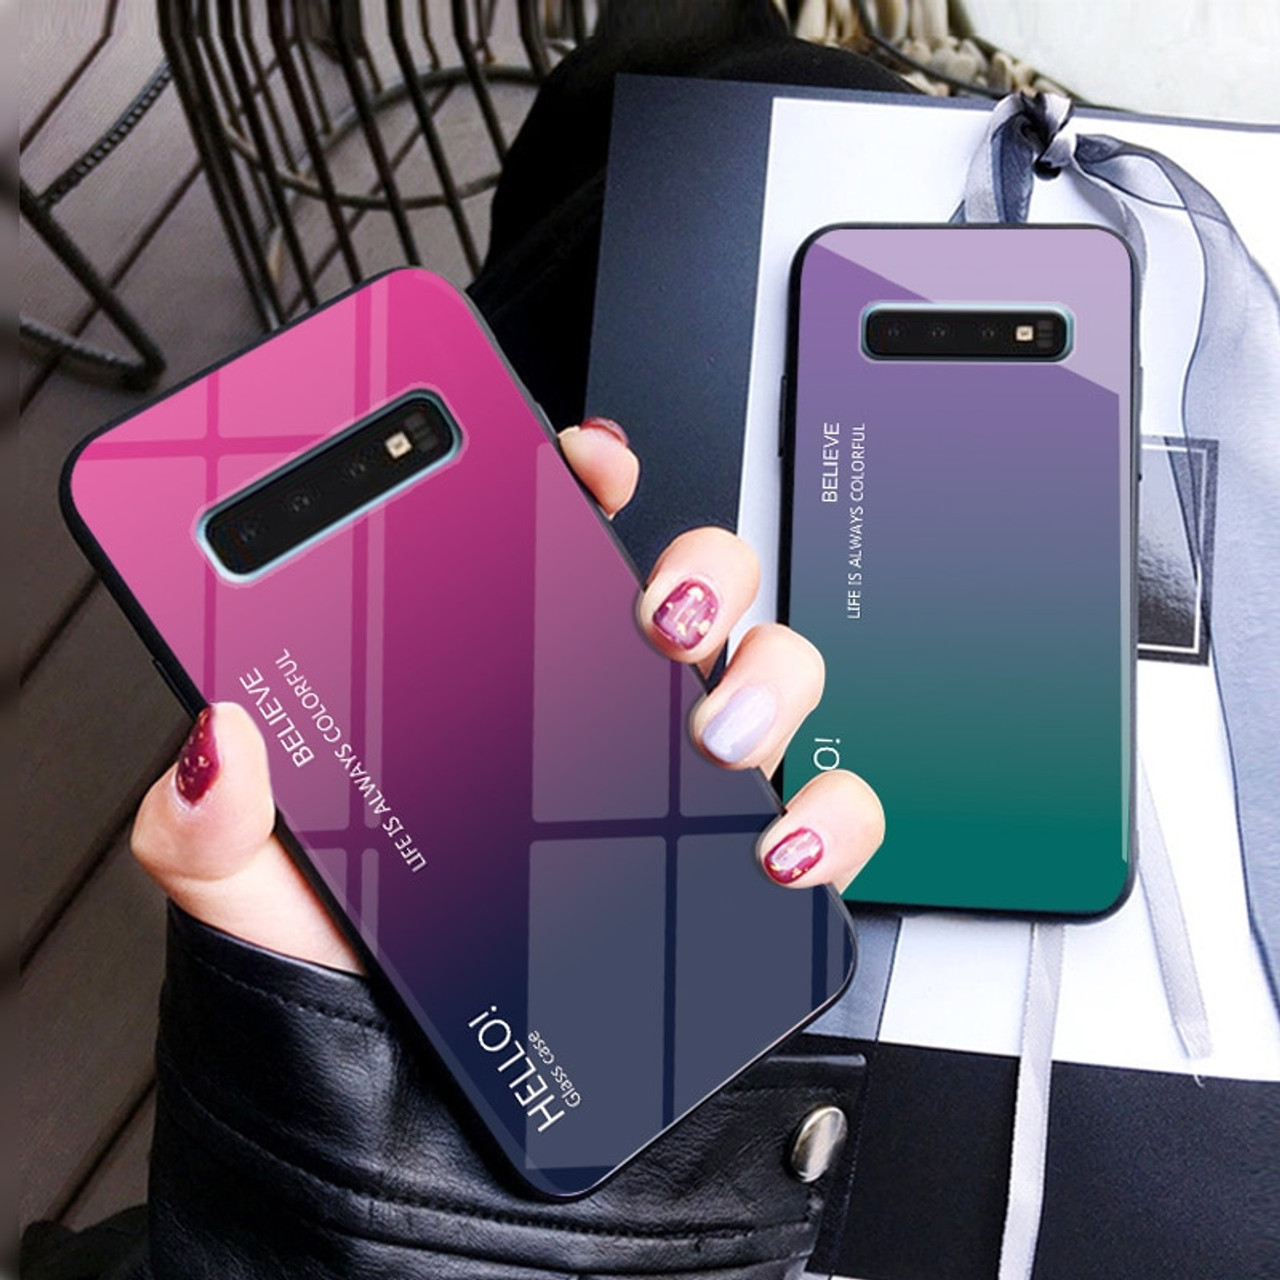 fd1400c190d Gradient Tempered Glass Phone Case For Samsung Galaxy S10e S8 S9 S10 Plus  Note 8 9 ...